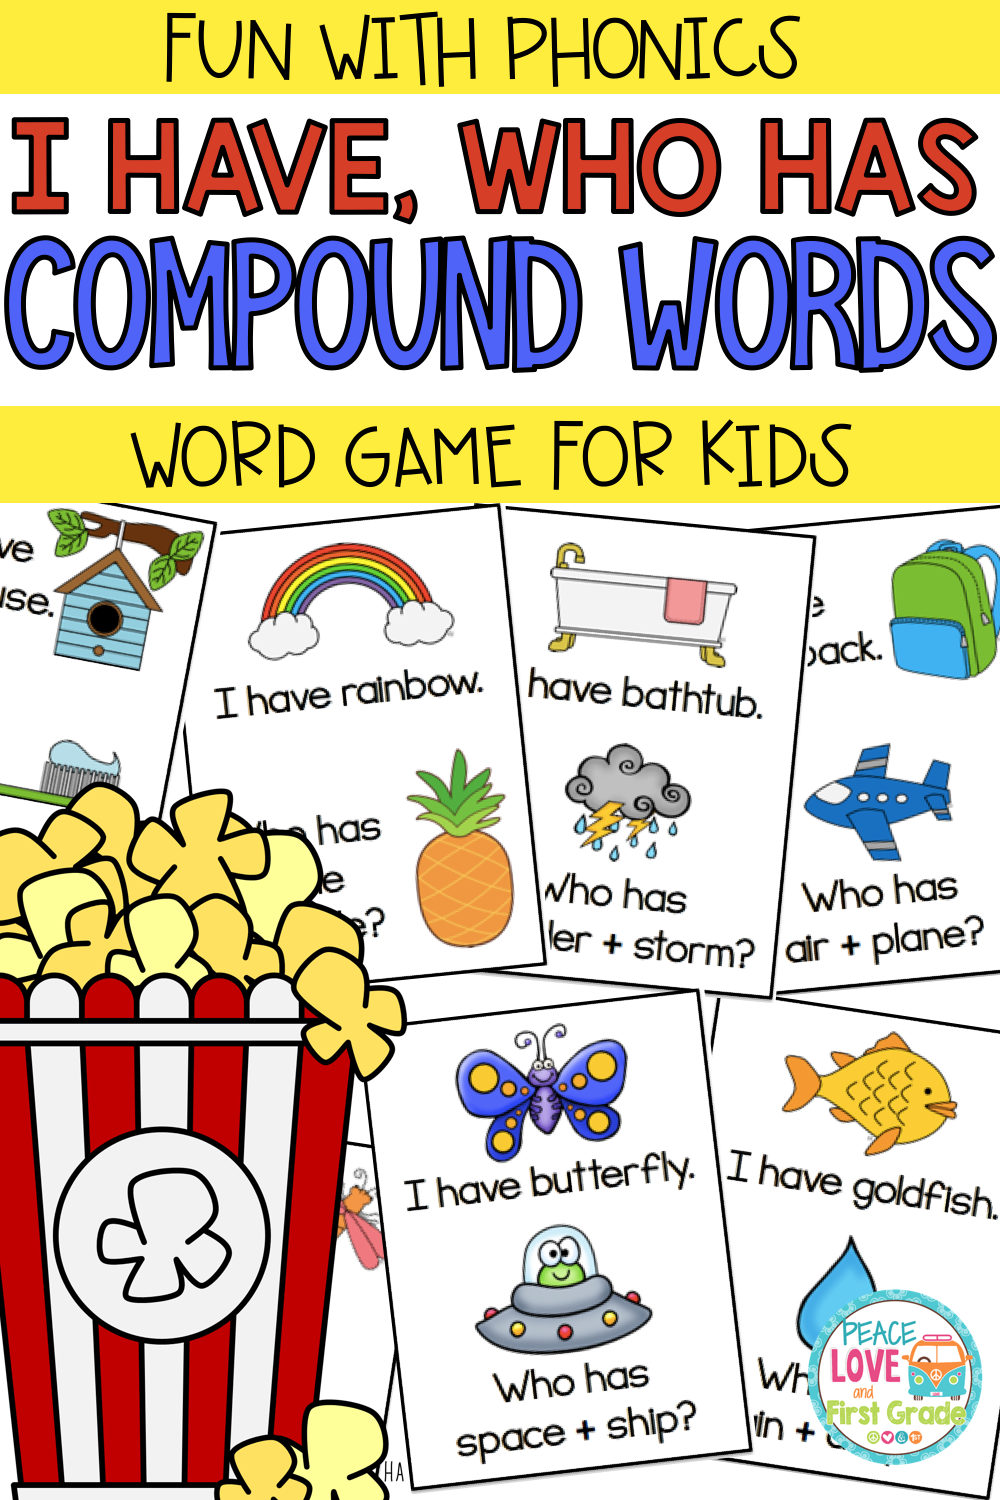 Compound Words Compound Words Word Games For Kids First Grade Reading